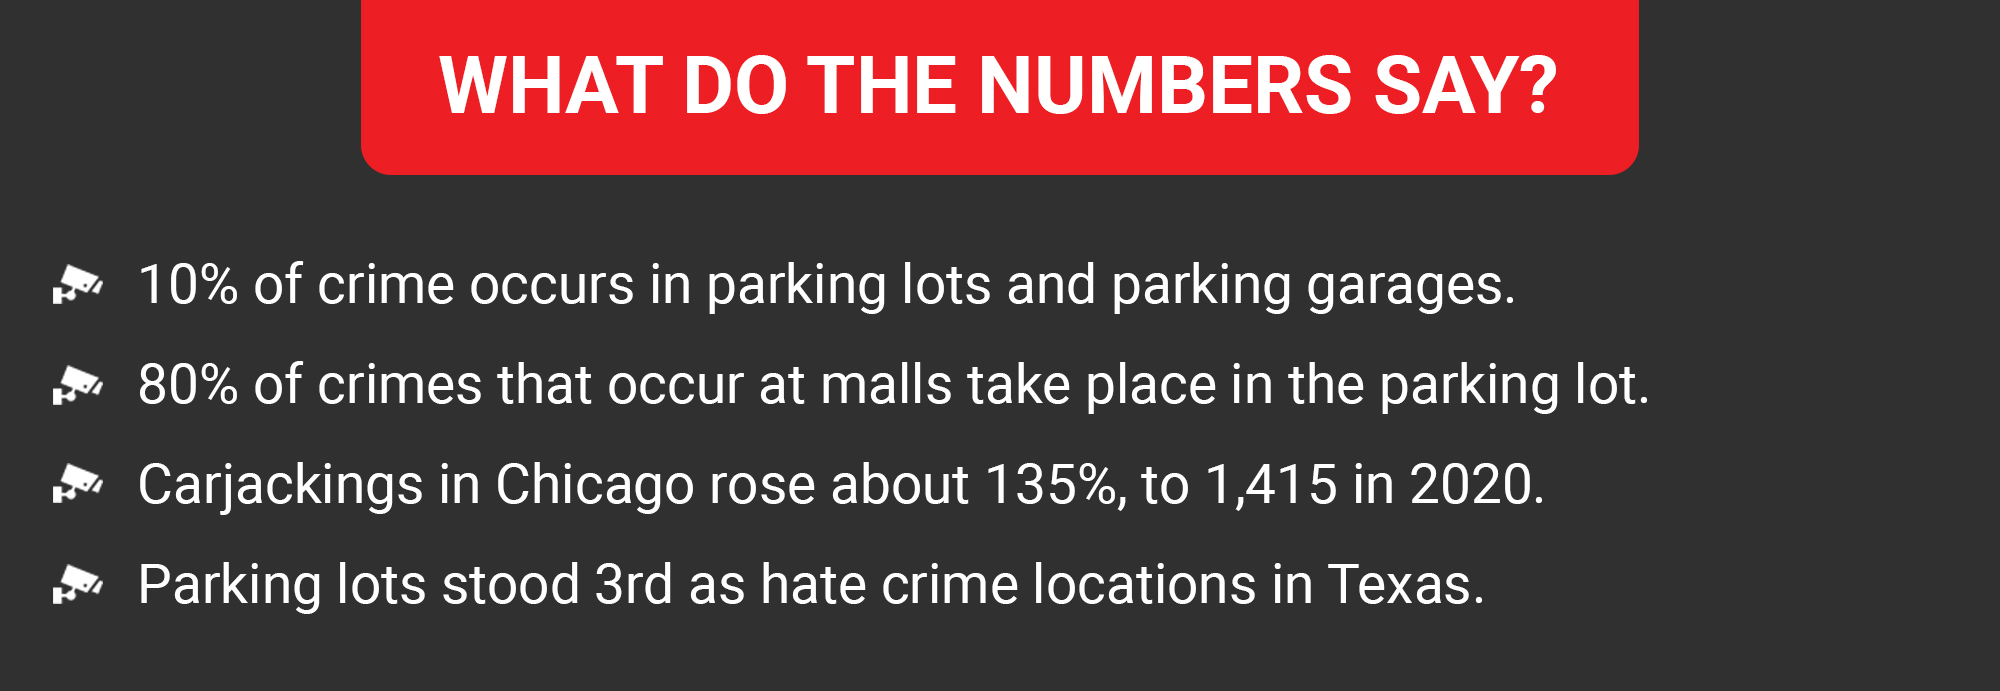 threats to vehicle security in parking lots